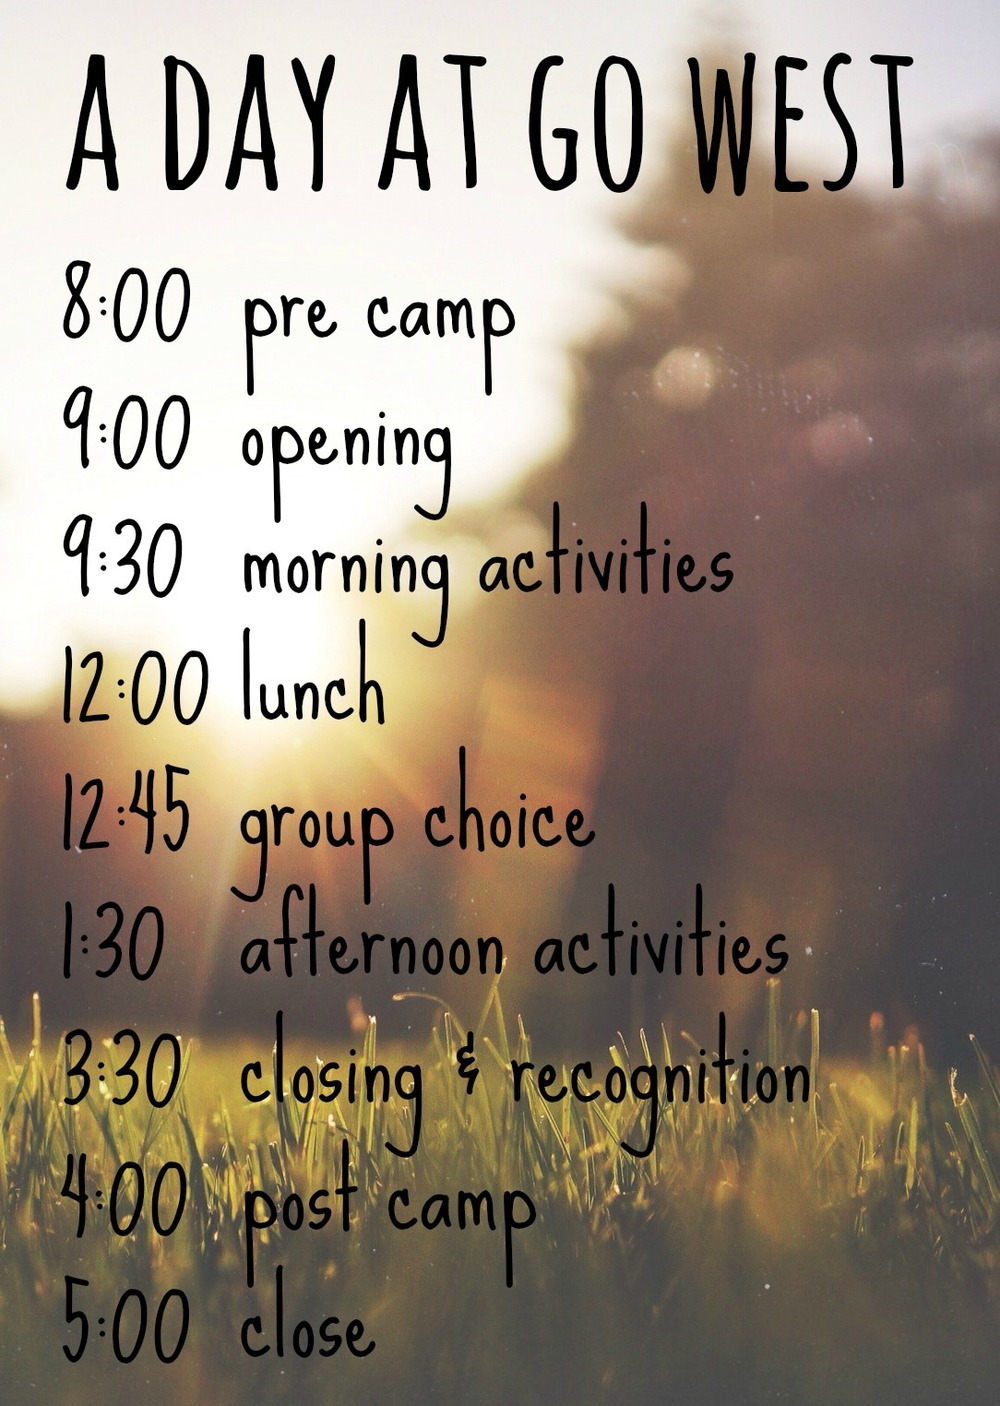 Go West Camps summer day camp schedule is designed to give kids an experience that promotes community building, skill building and fun. We spend most of the day outdoors enjoying the natural environment and recreational opportunities that Colorado Springs, Colorado has to offer.